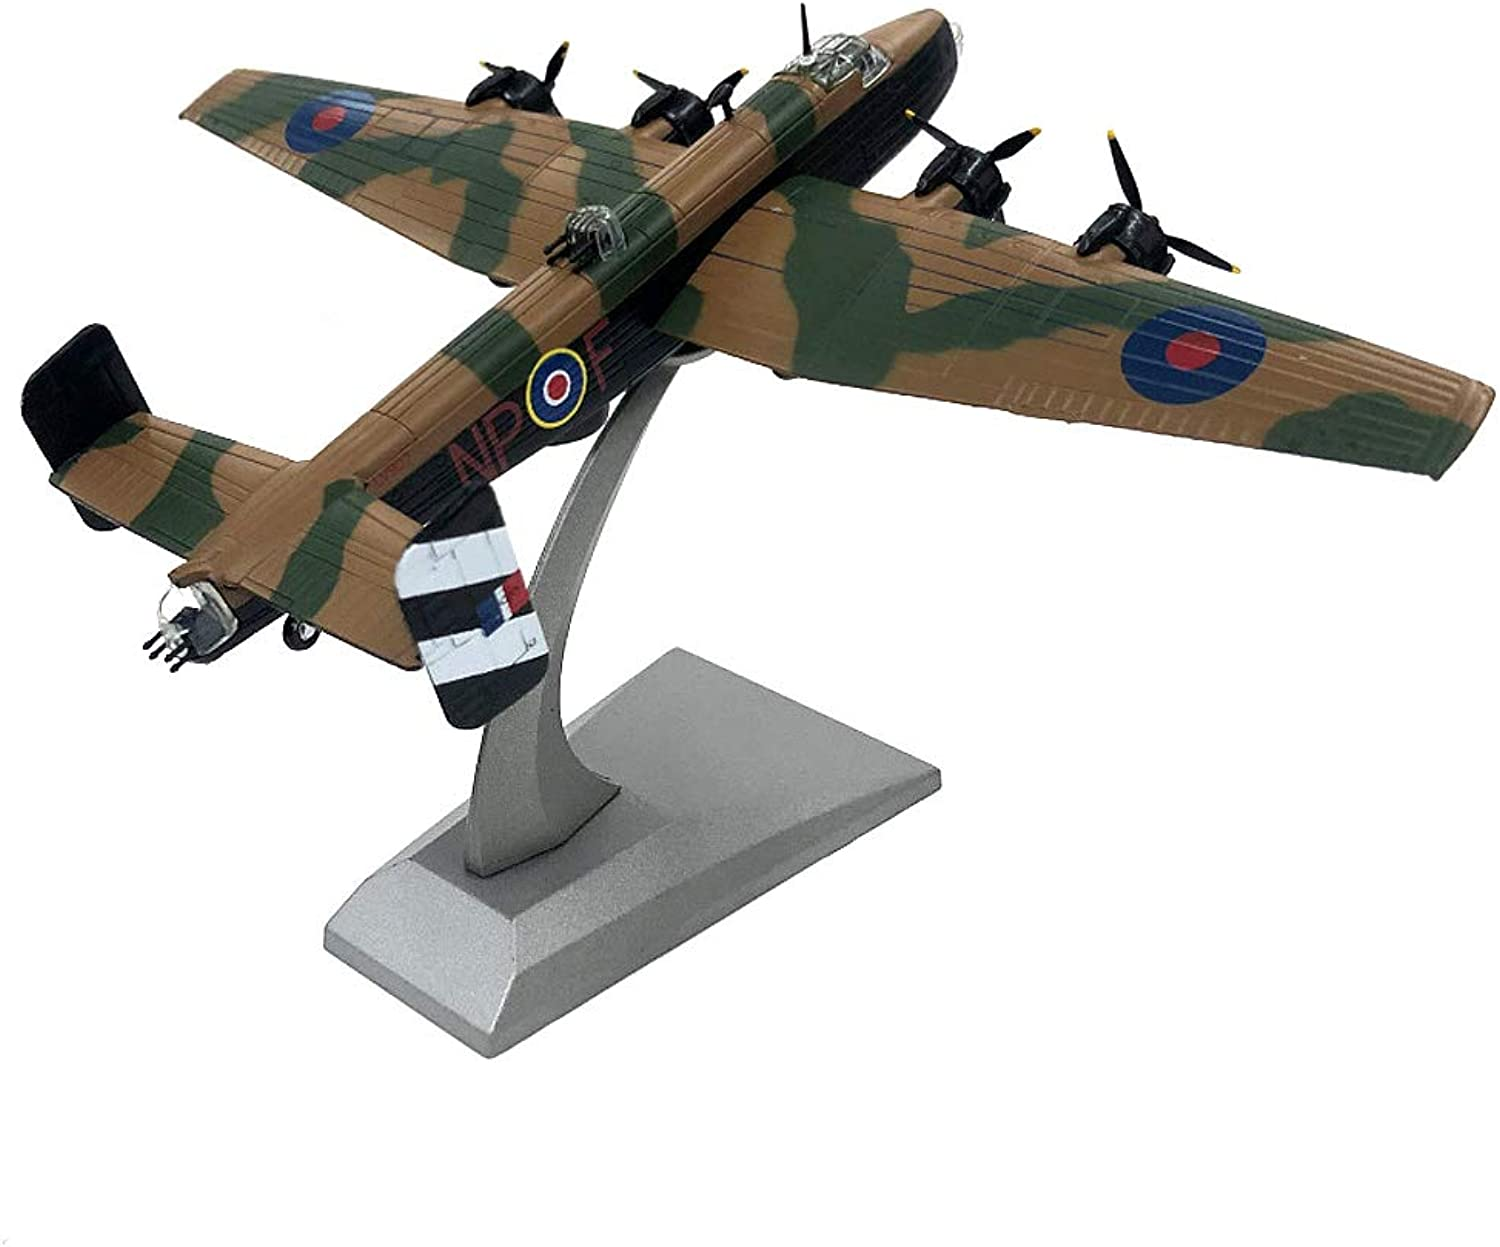 British Handley Page Halifax B.MK III 1 144 Finished Plane Model Aircraft